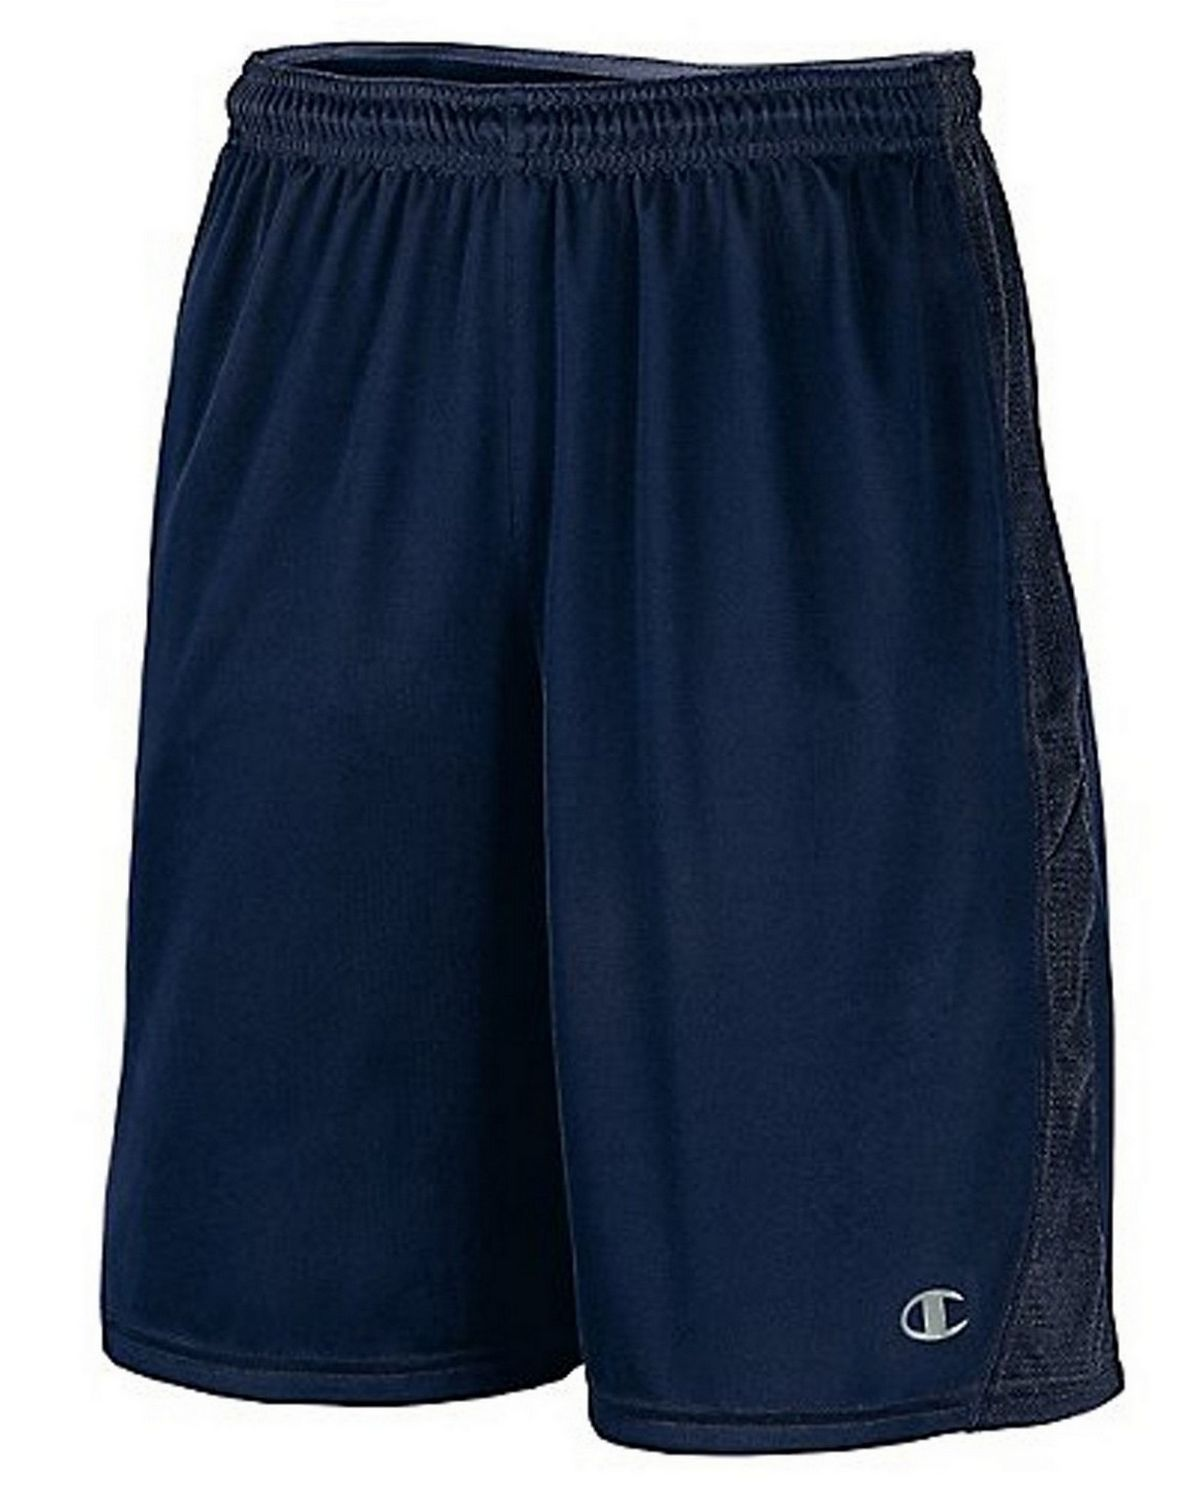 Champion 86703 Vapor PowerTrain Knit Shorts - Navy - XXL 86703